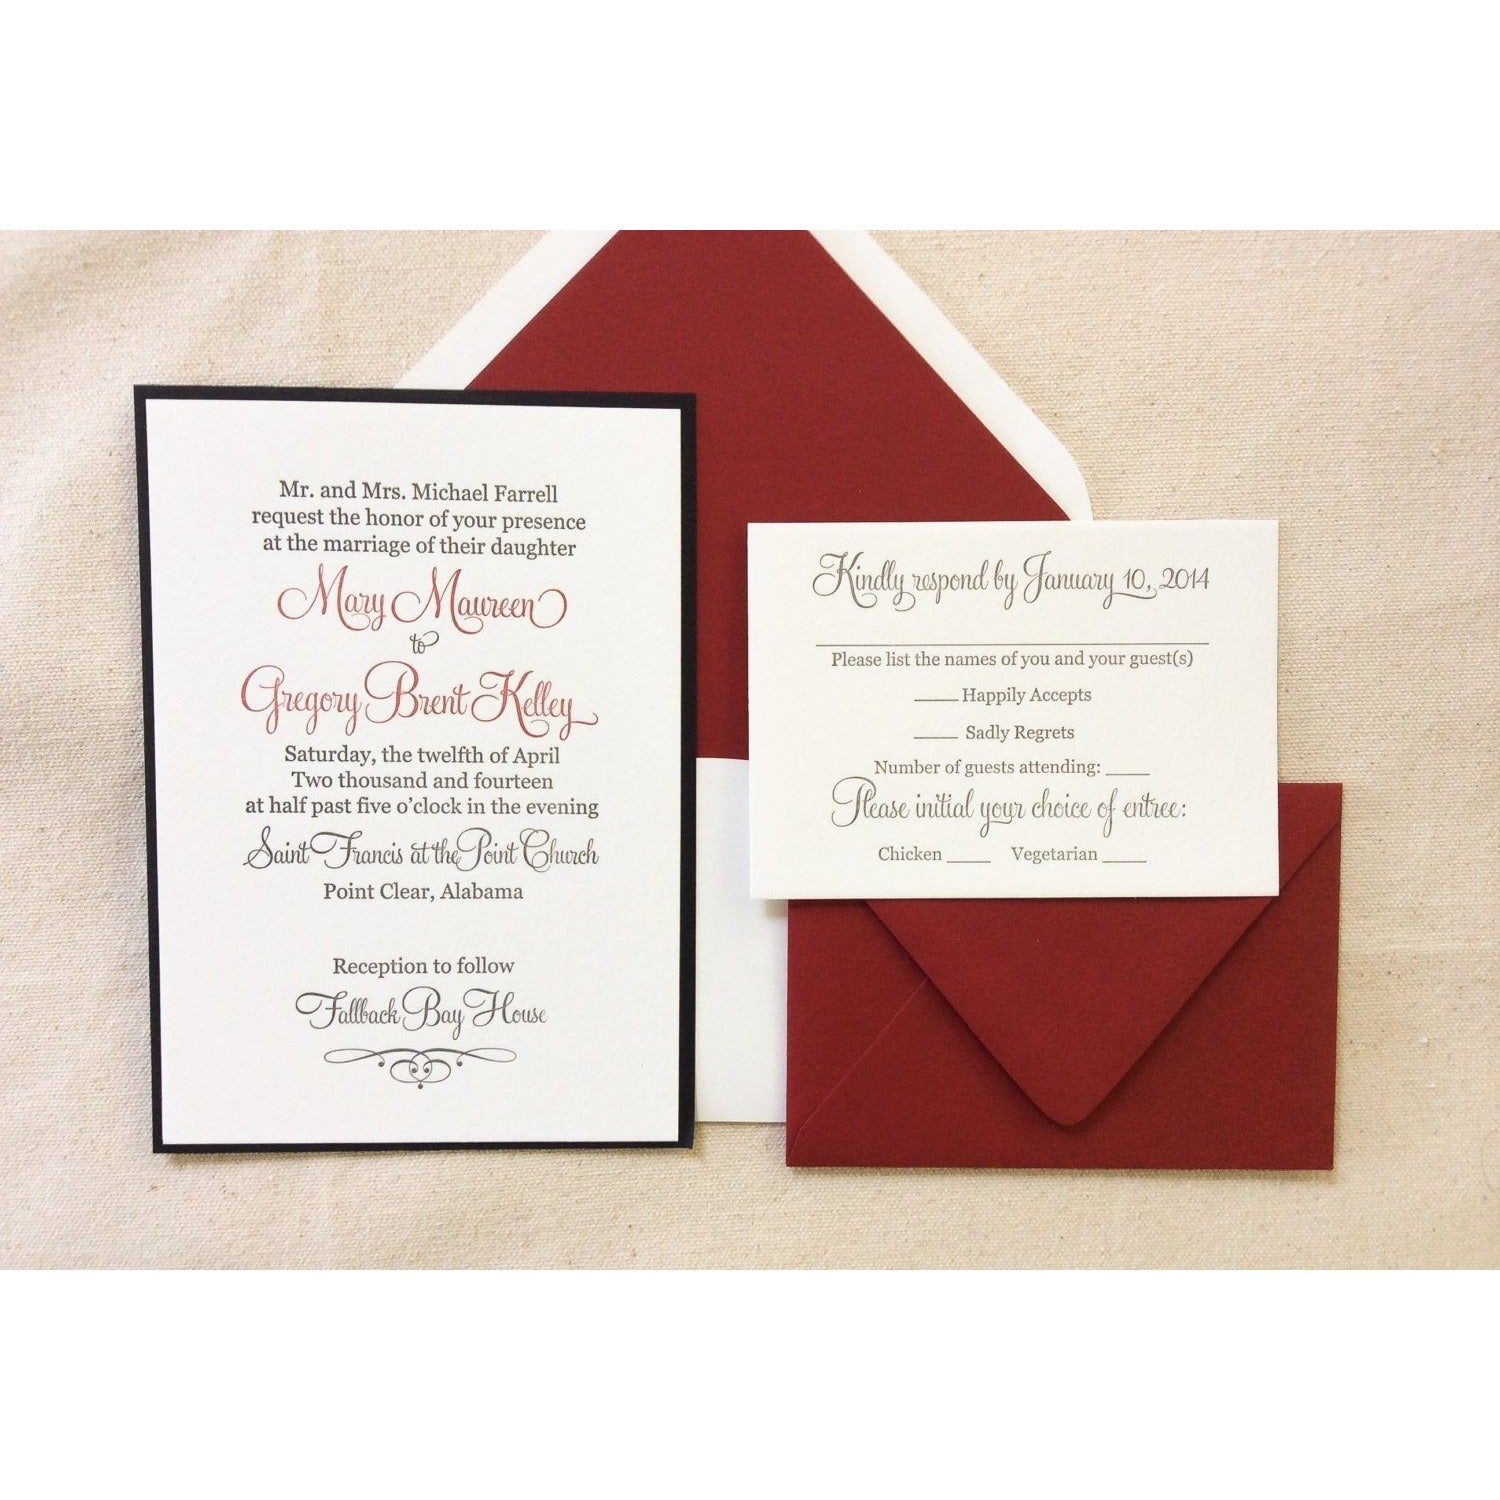 The Red Rose Suite - Letterpress Wedding Invitations